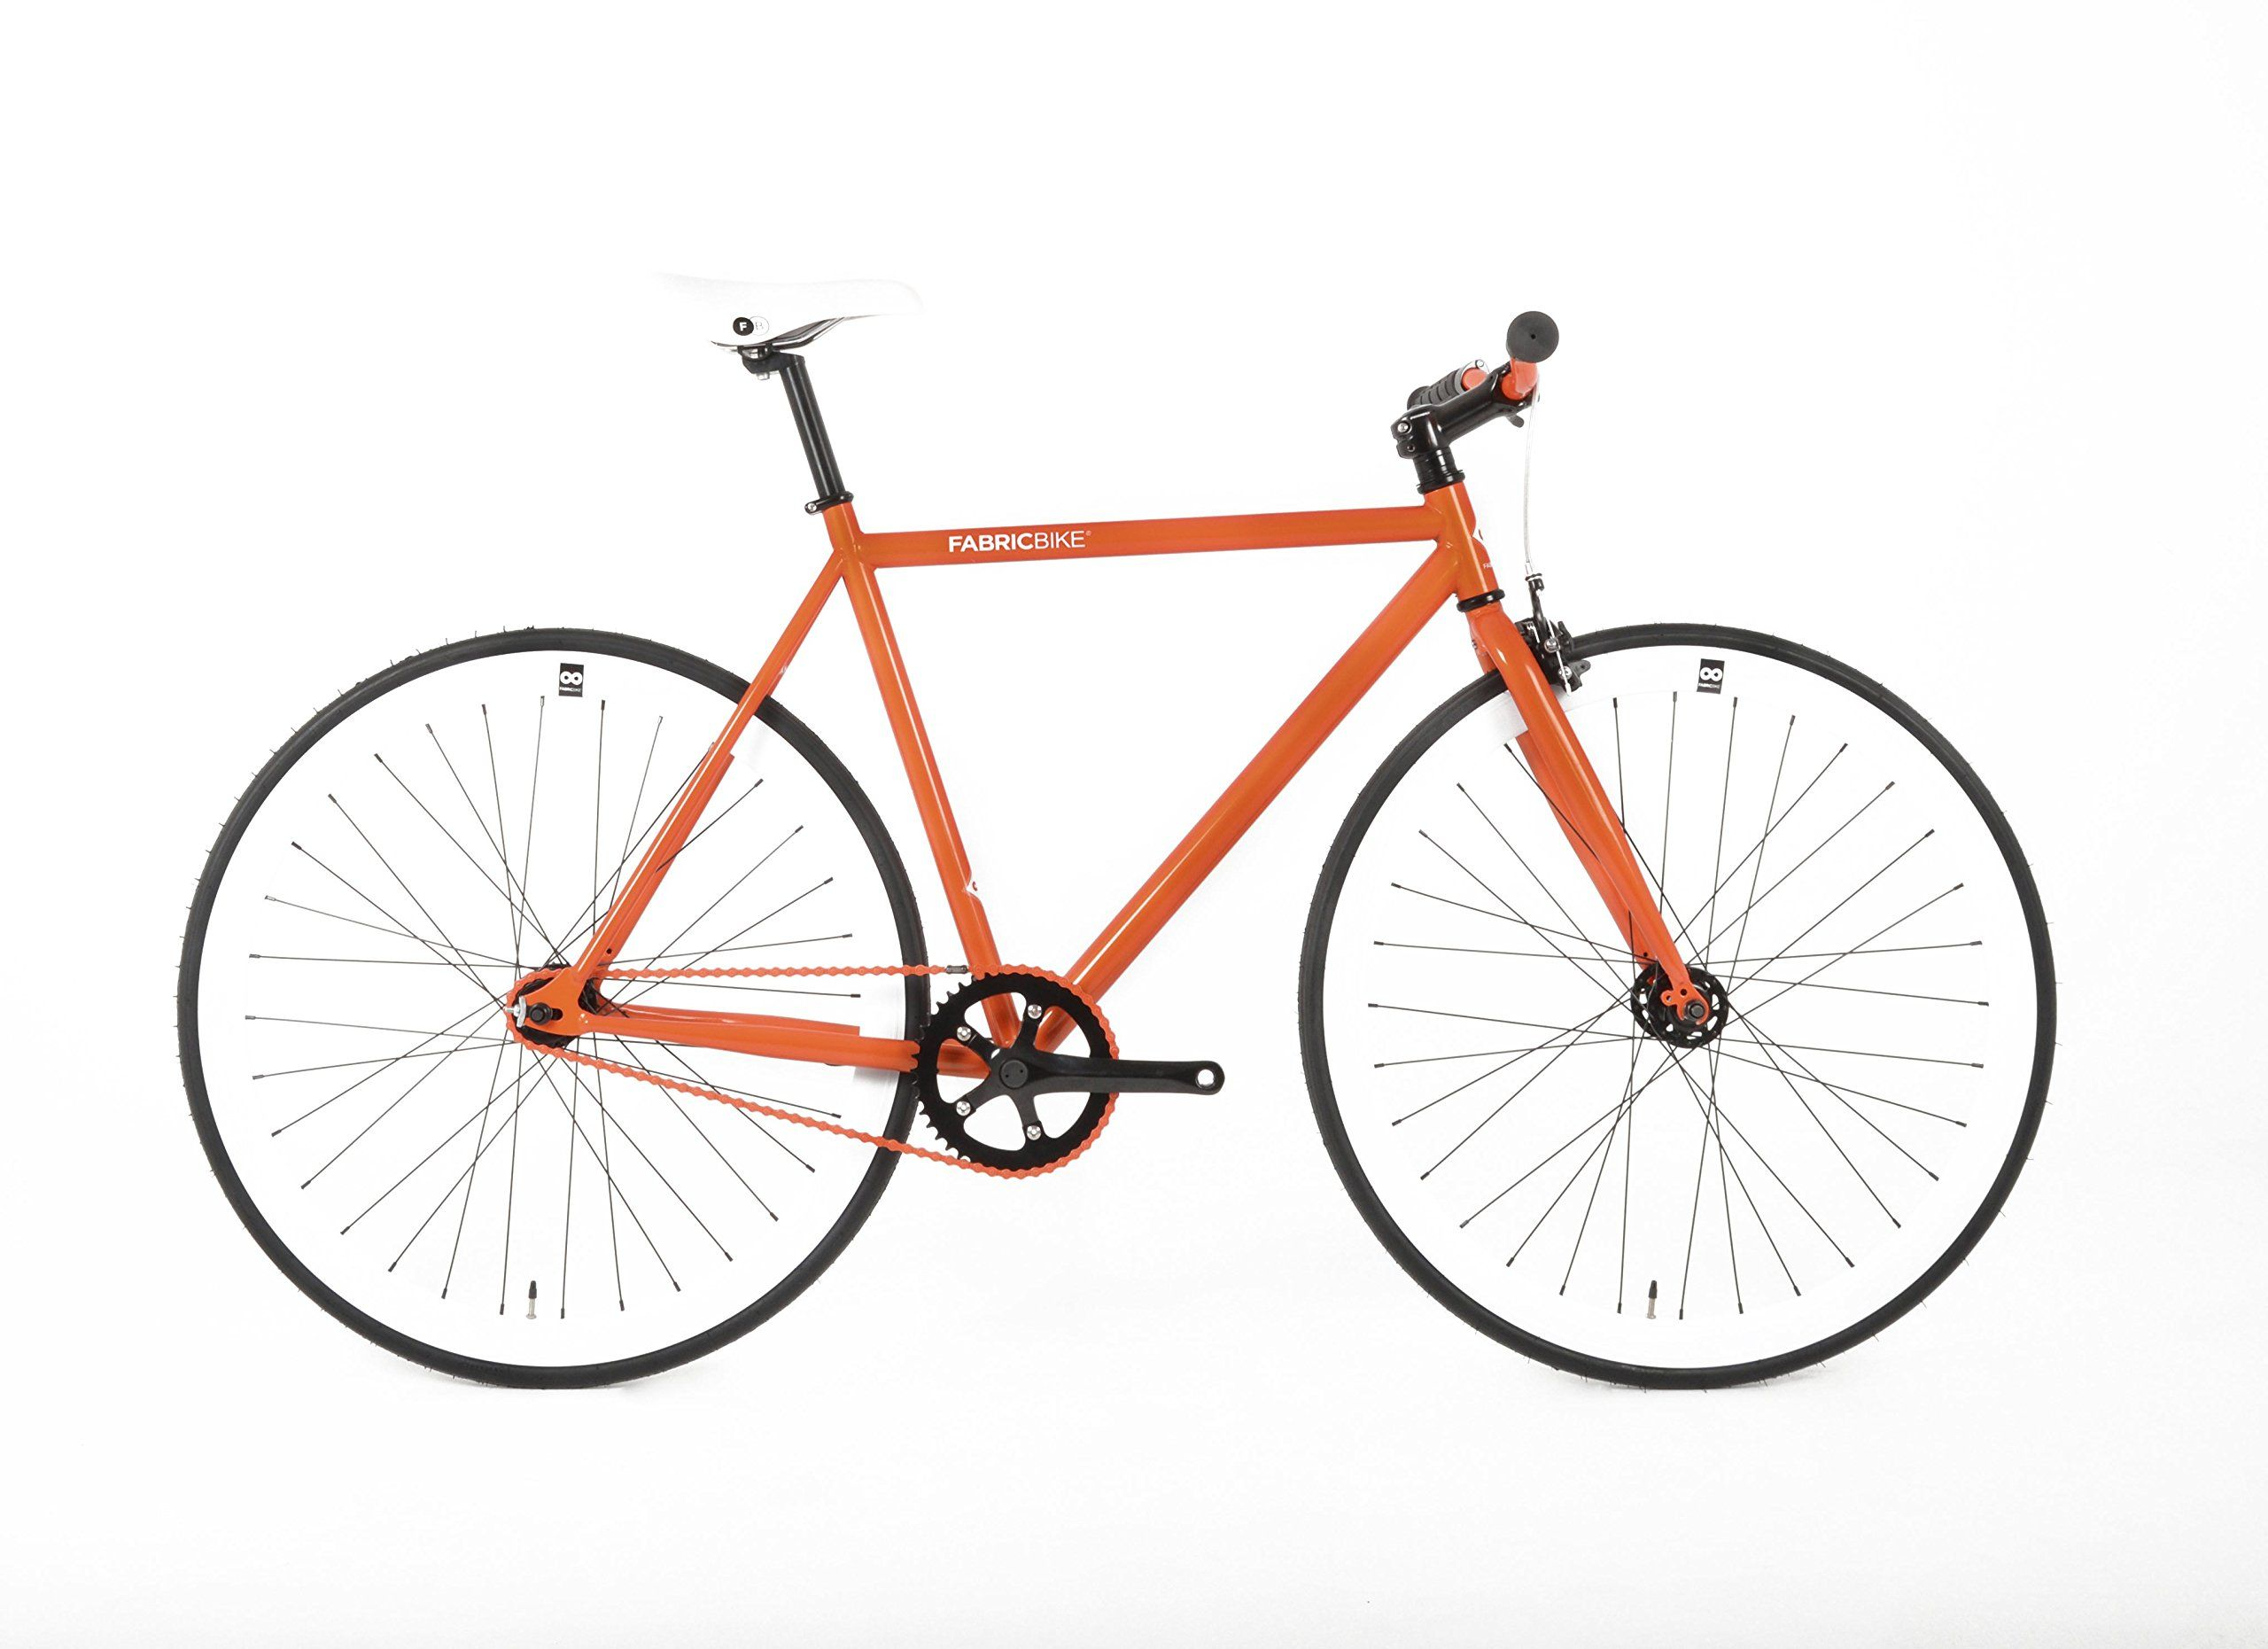 Fabricbike Bicicleta Fixie Naranja Pinon Fijo Single Speed